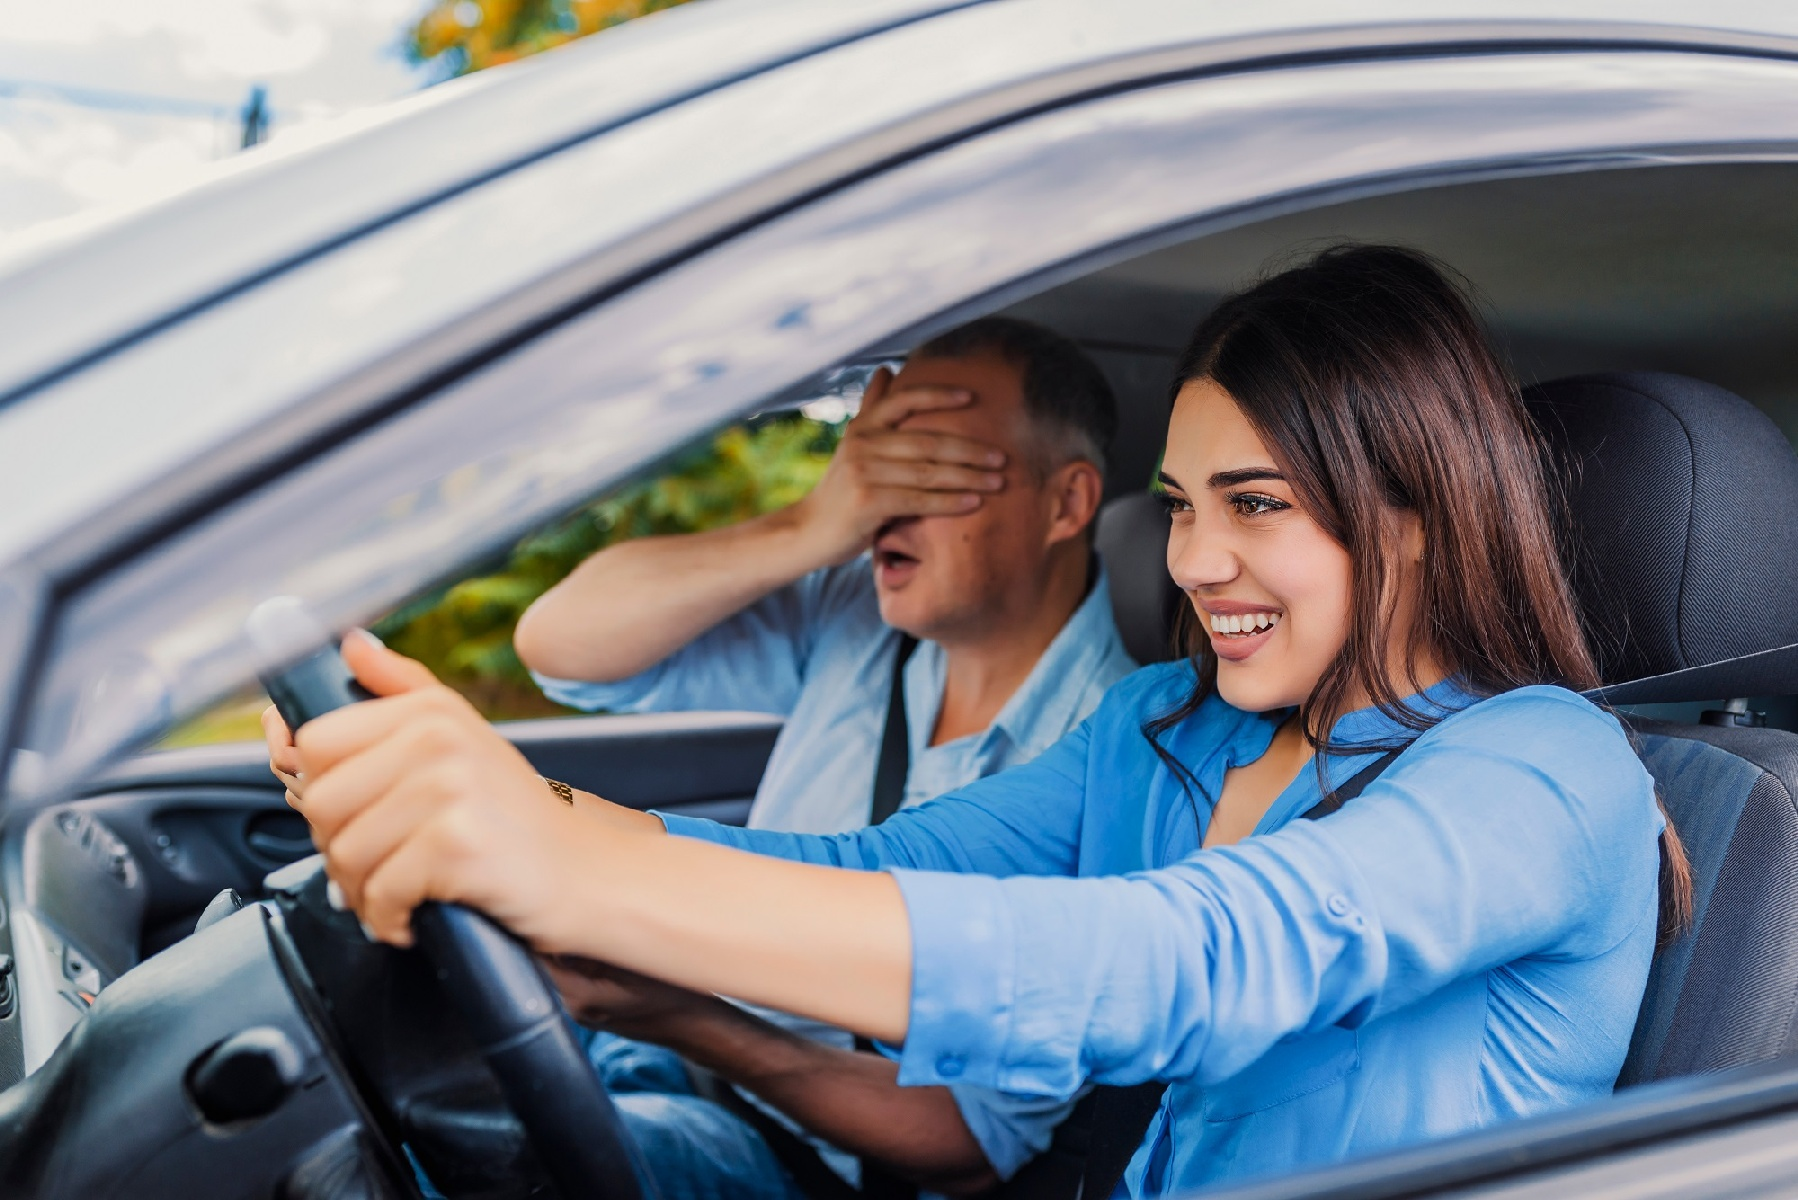 Dad covering eyes as daughter happily drives